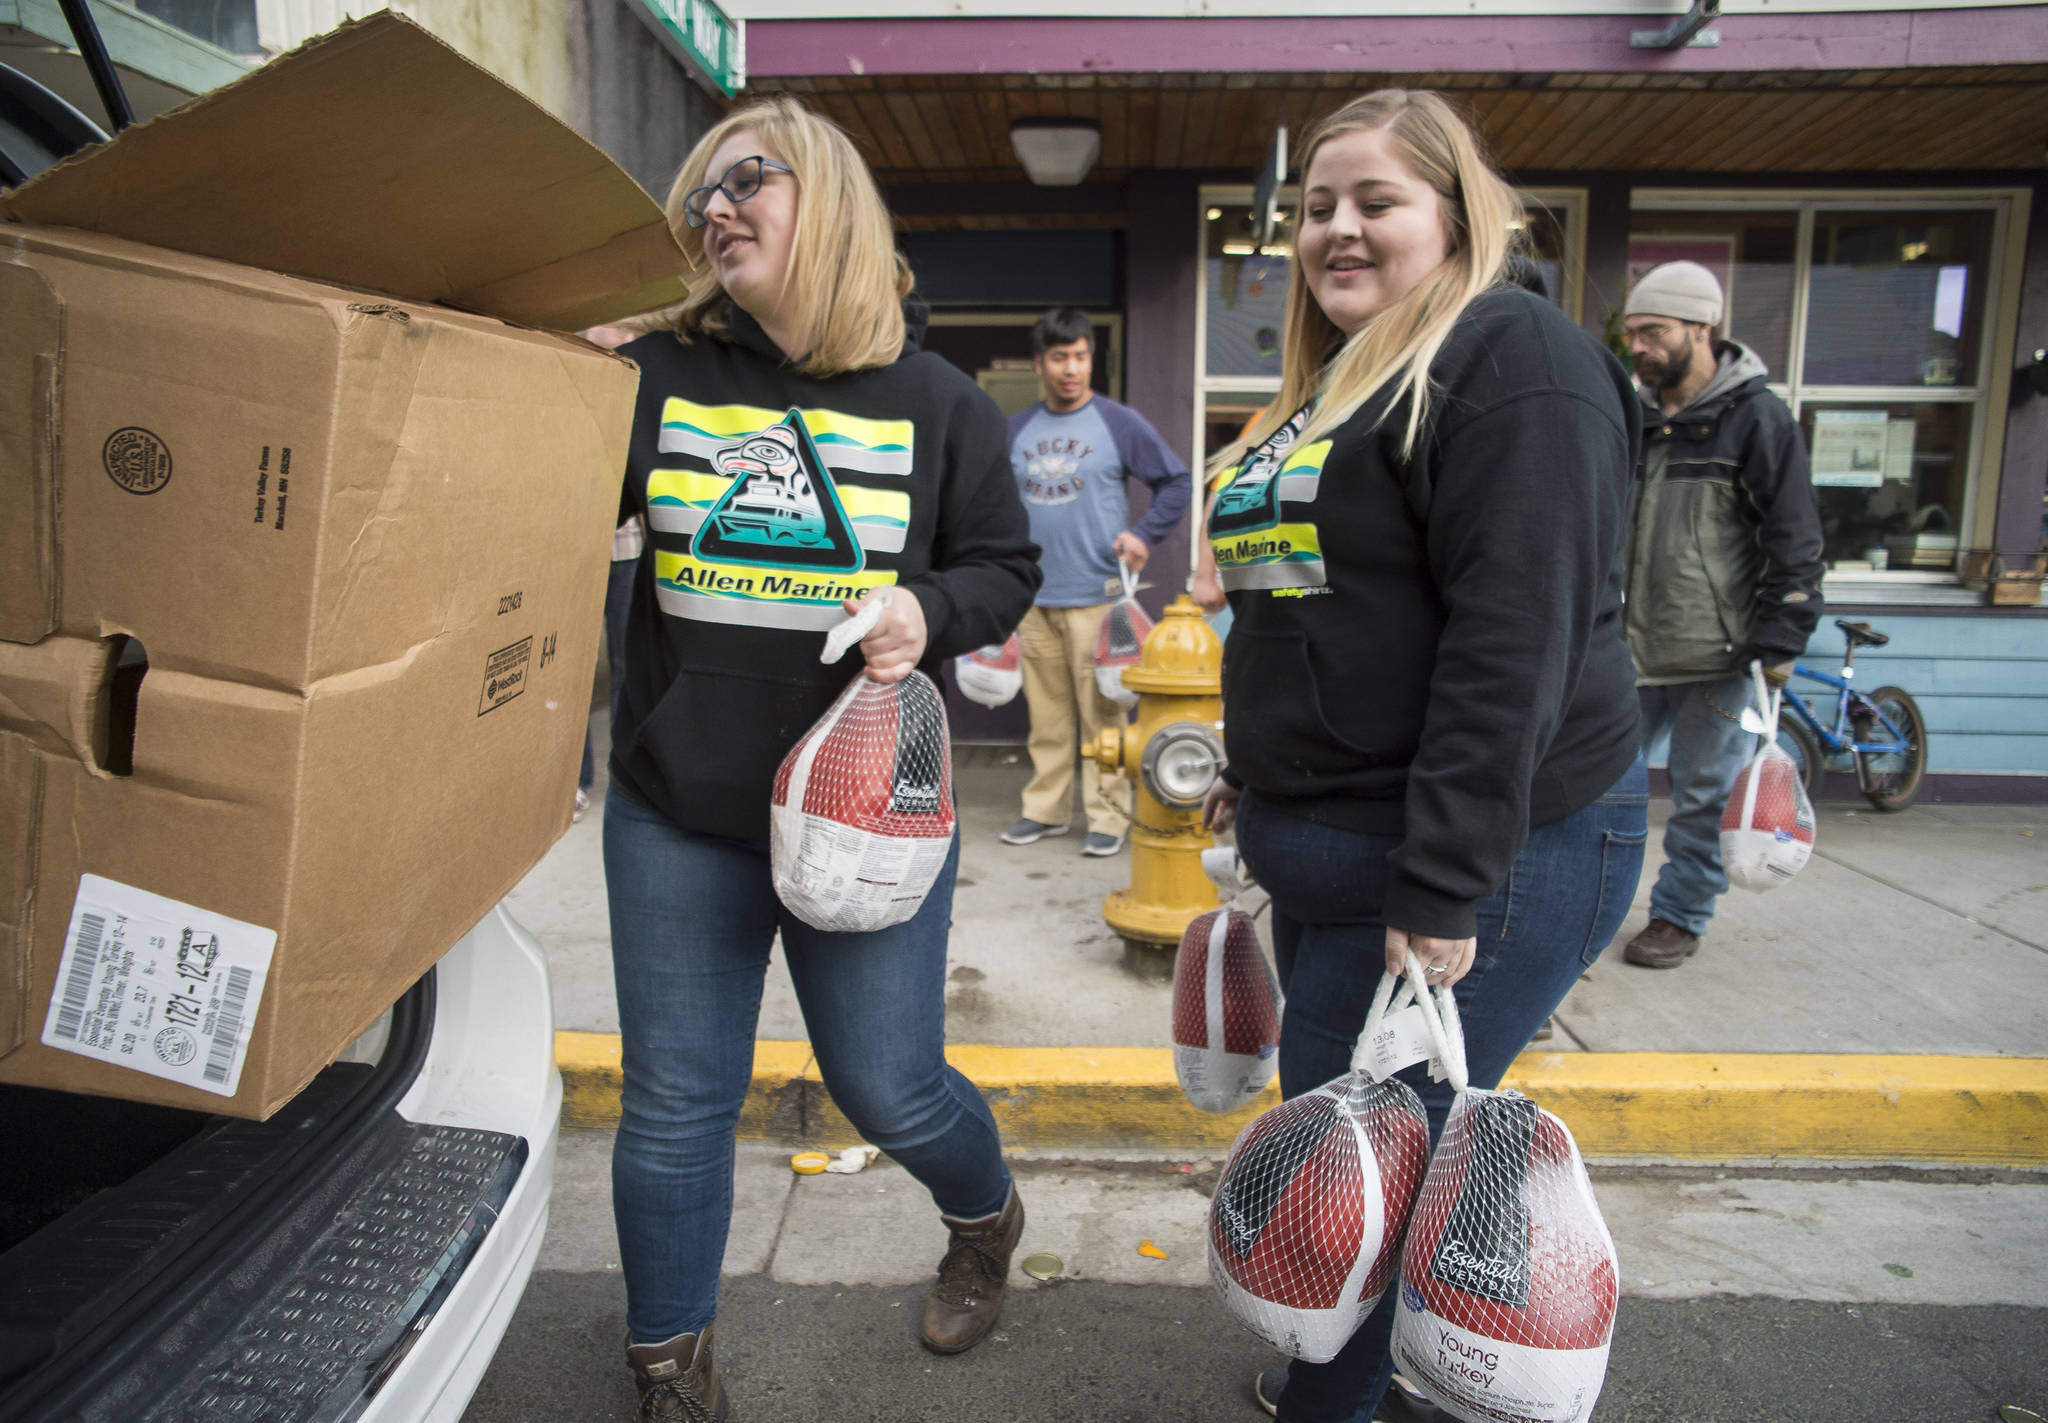 Cassandra Strahin, left, and Nicole Huntsman, of Allen Marine, deliver 30 frozen turkeys to the Glory Hole on Monday, Nov. 6, 2017. (Michael Penn | Juneau Empire File)